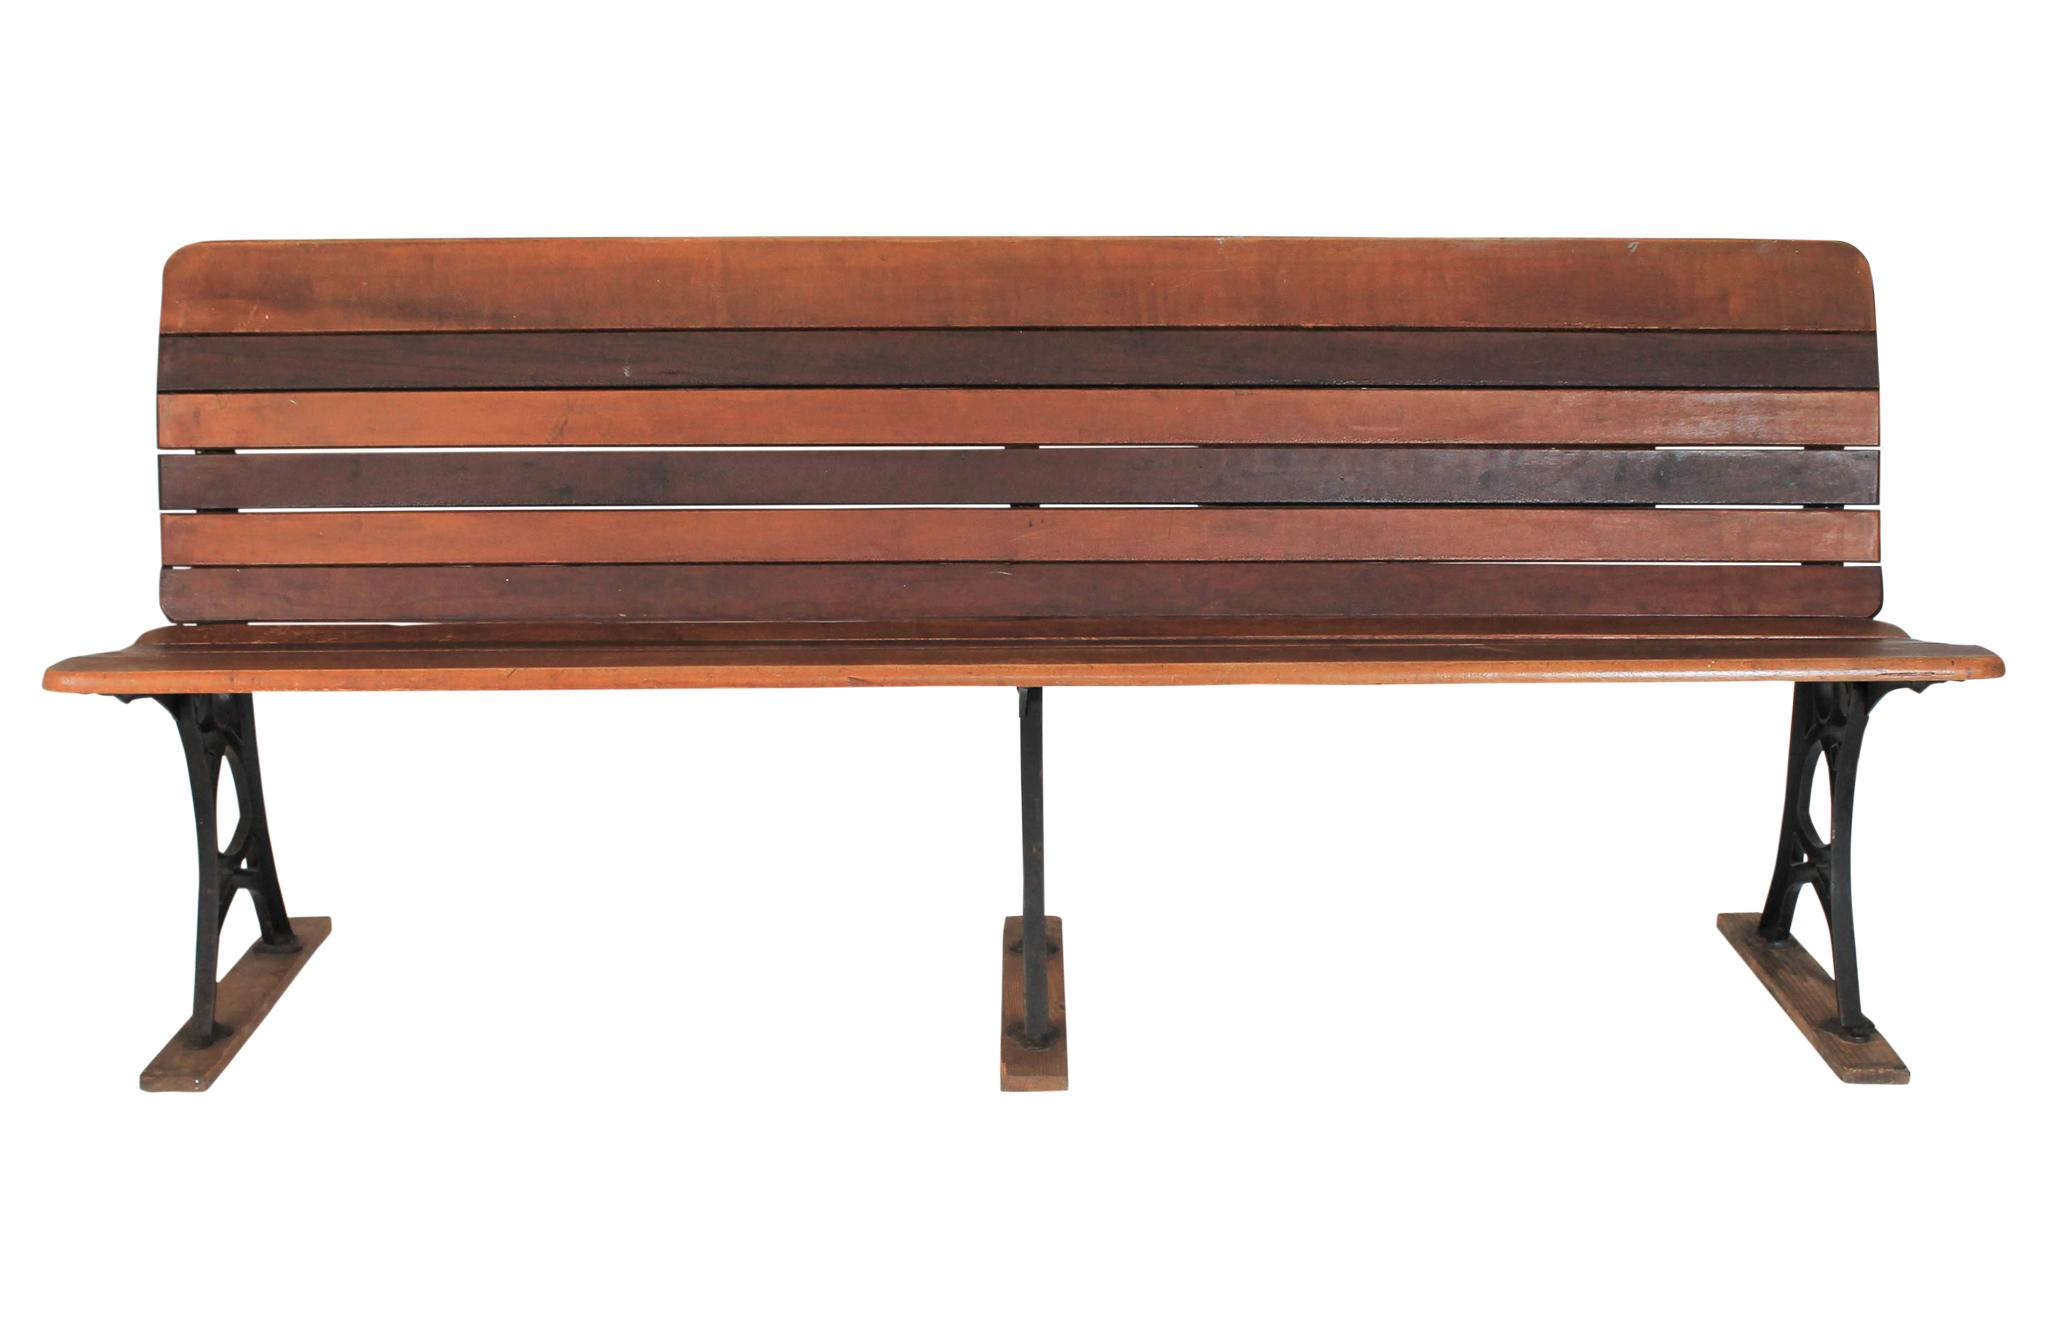 Antique Early American Slat School Bench With Folding Seat Mechanism. Iron  Base Has Decorative Detailing